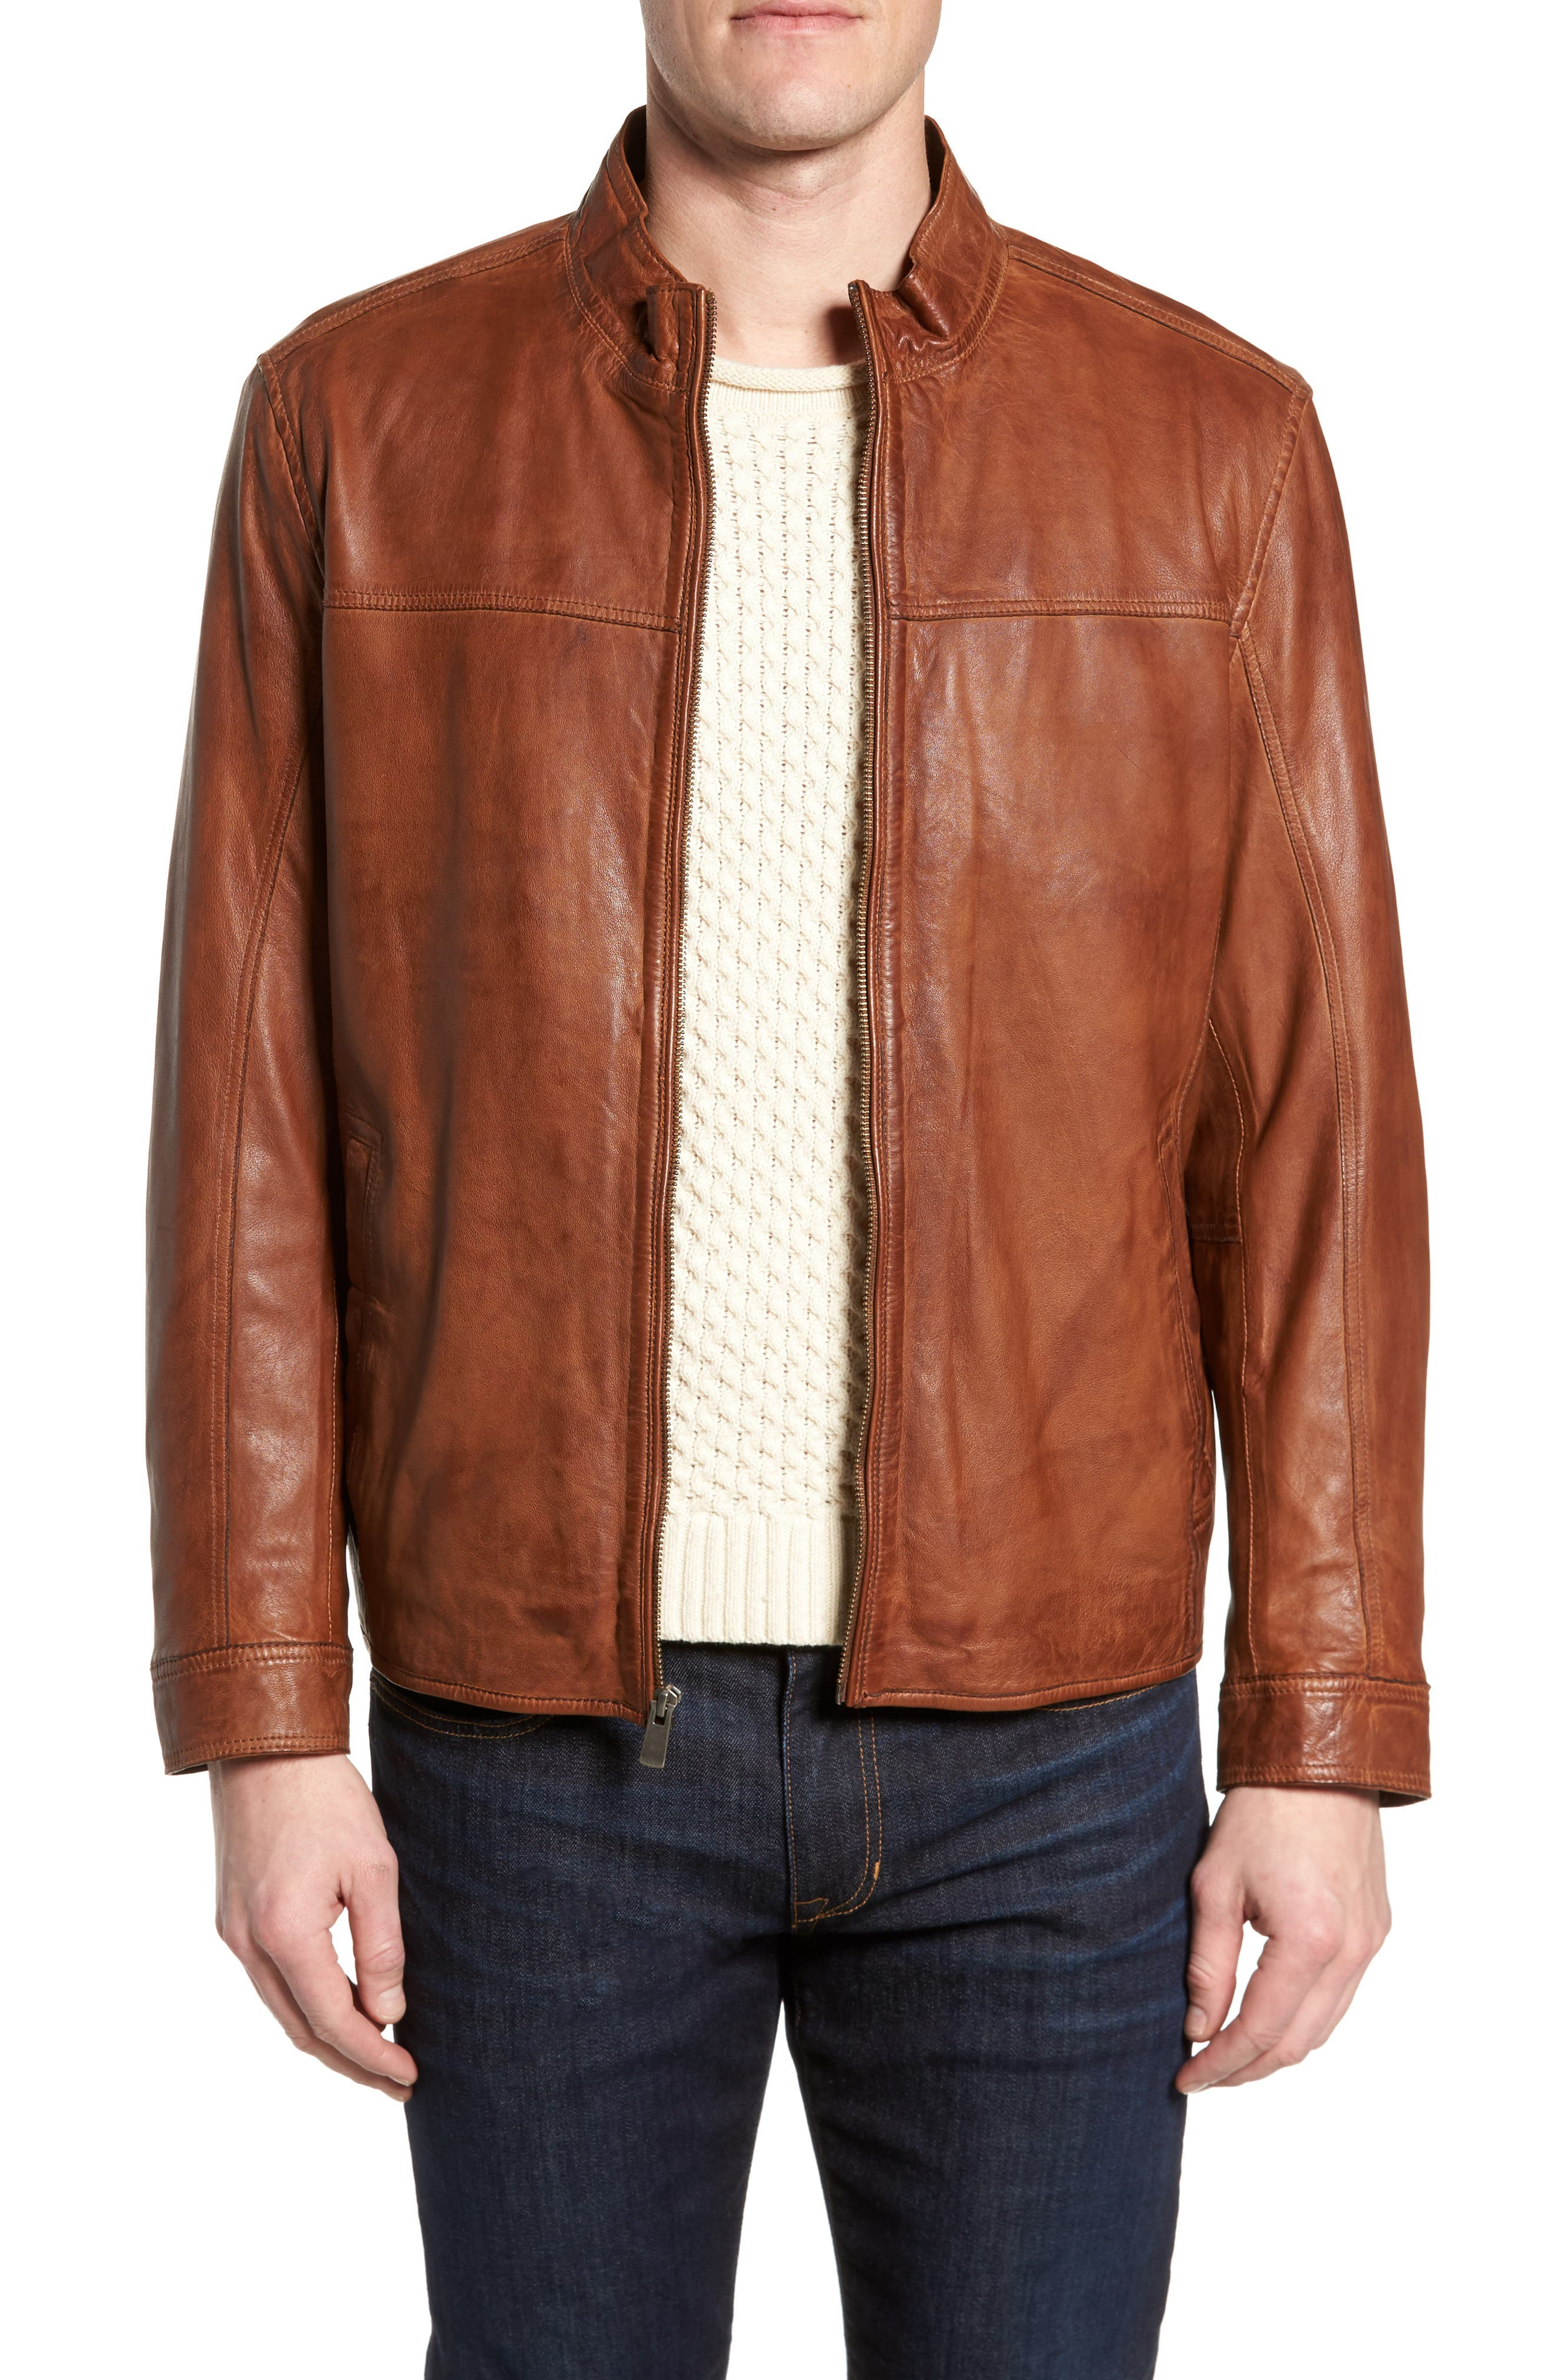 Zip Leather Jacket,                             Main thumbnail 1, color,                             210